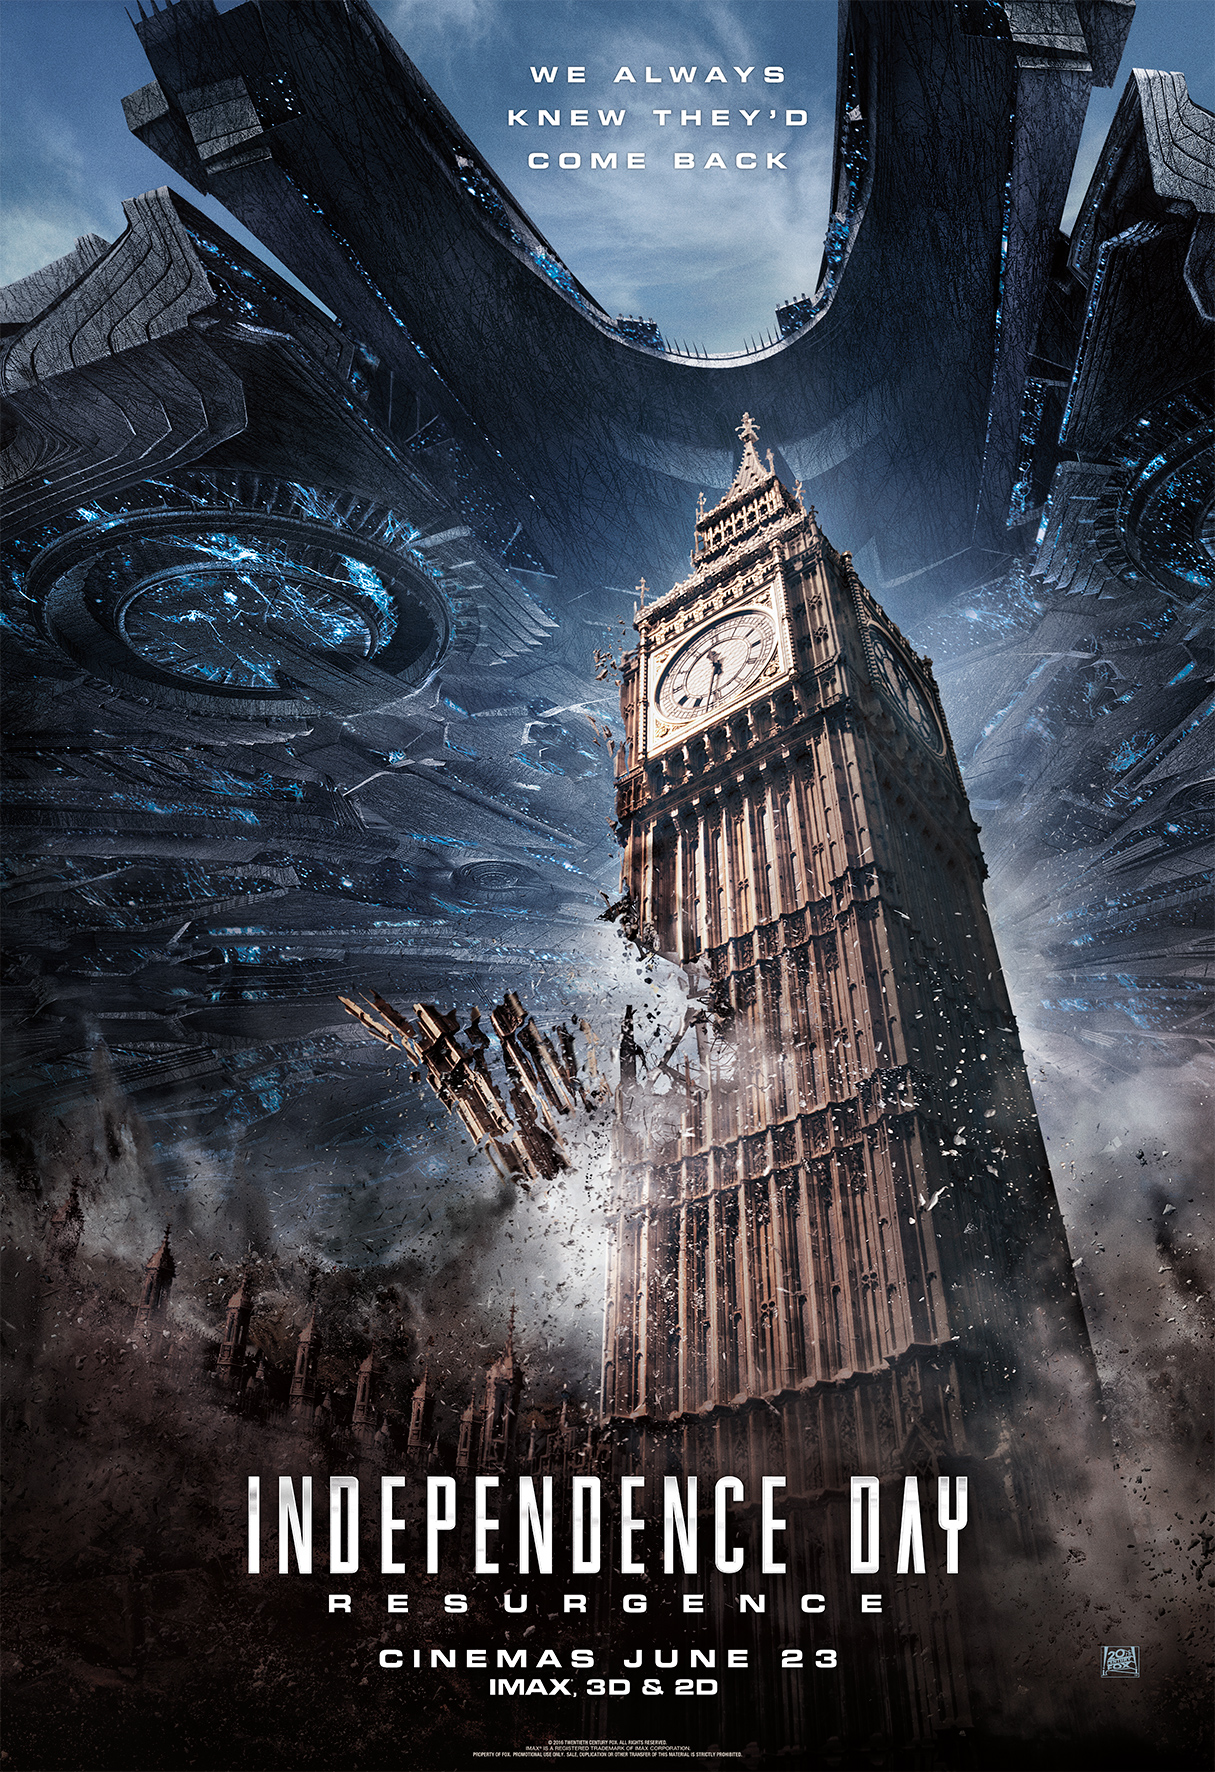 Independence Day: Resurgence - Poster